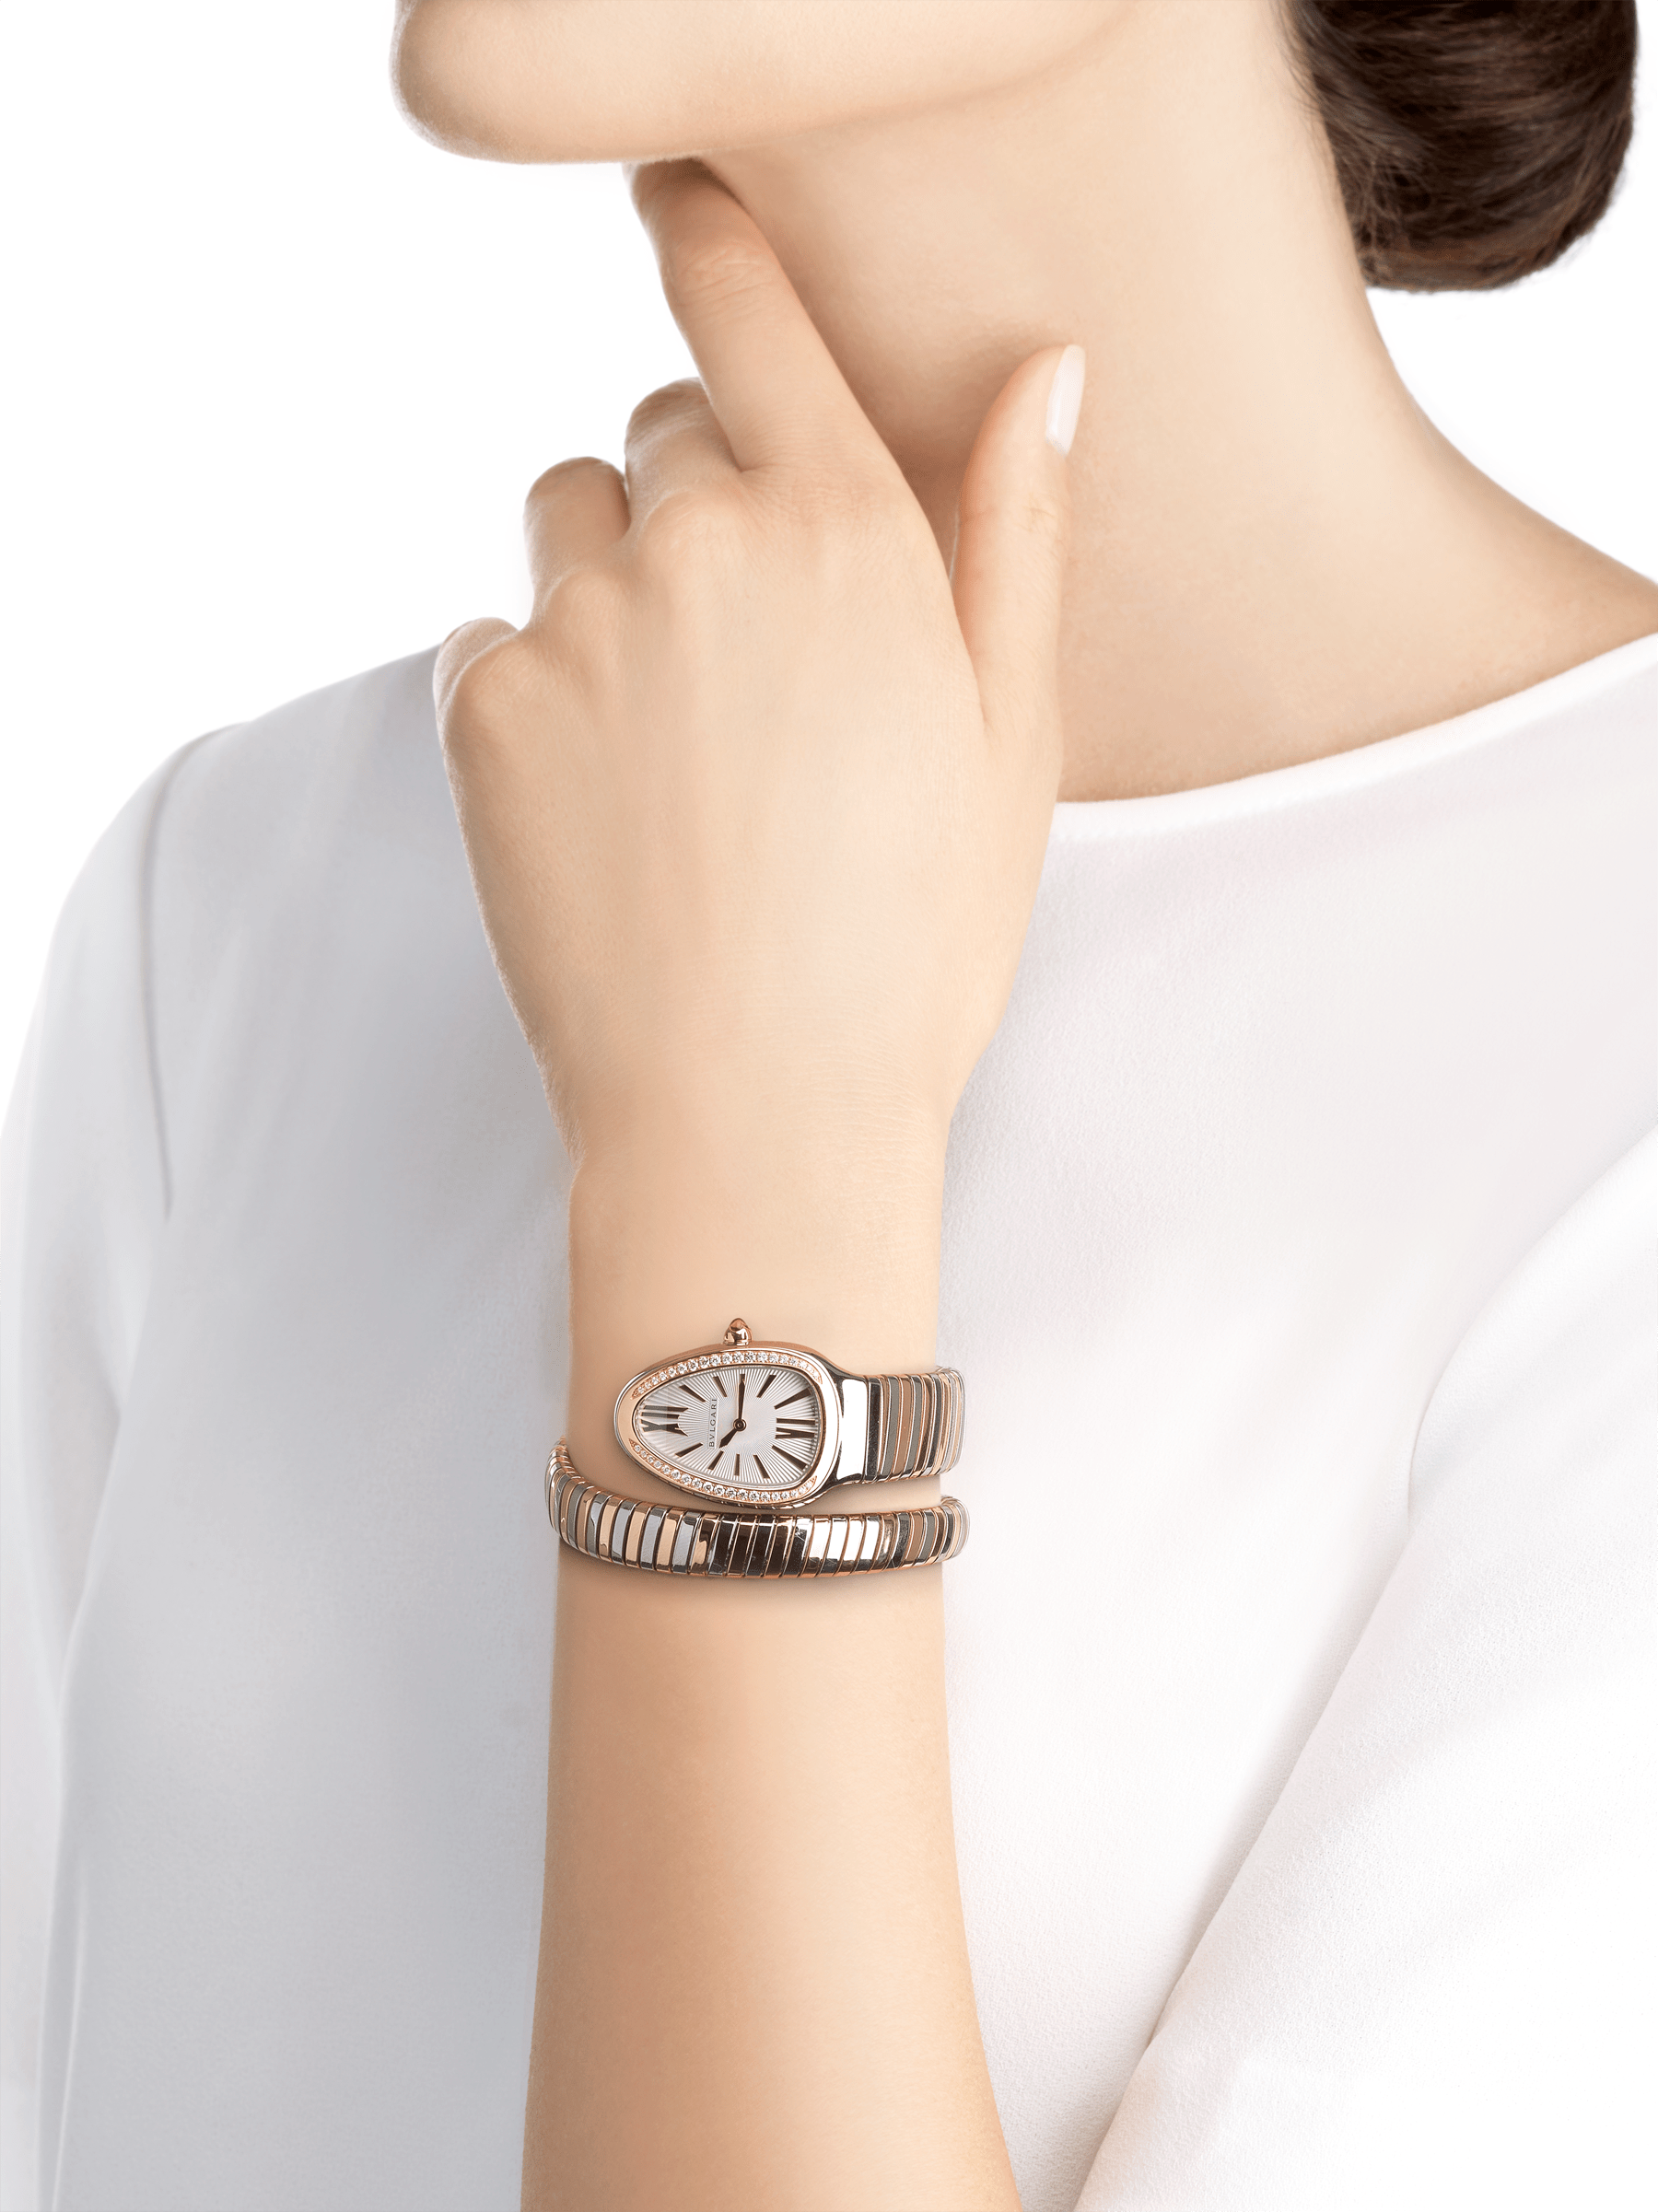 Serpenti Tubogas single spiral watch with stainless steel case, 18 kt rose gold bezel set with brilliant cut diamonds, silver opaline dial, 18 kt rose gold and stainless steel bracelet. 102237 image 4